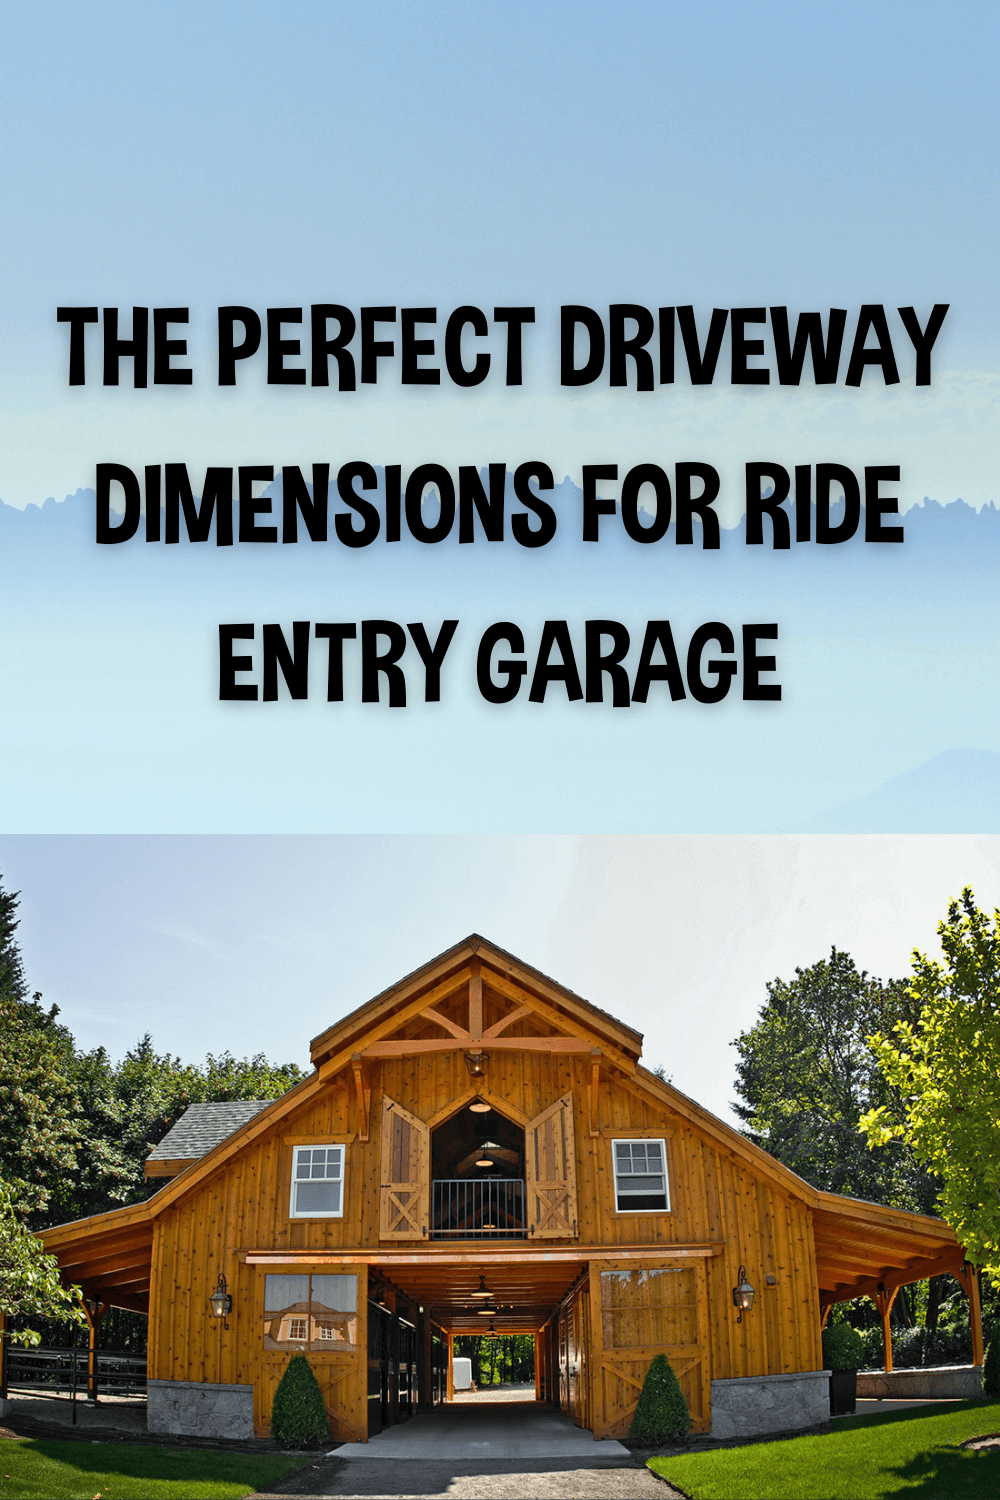 THE PERFECT DRIVEWAY DIMENSIONS FOR RIDE ENTRY GARAGE